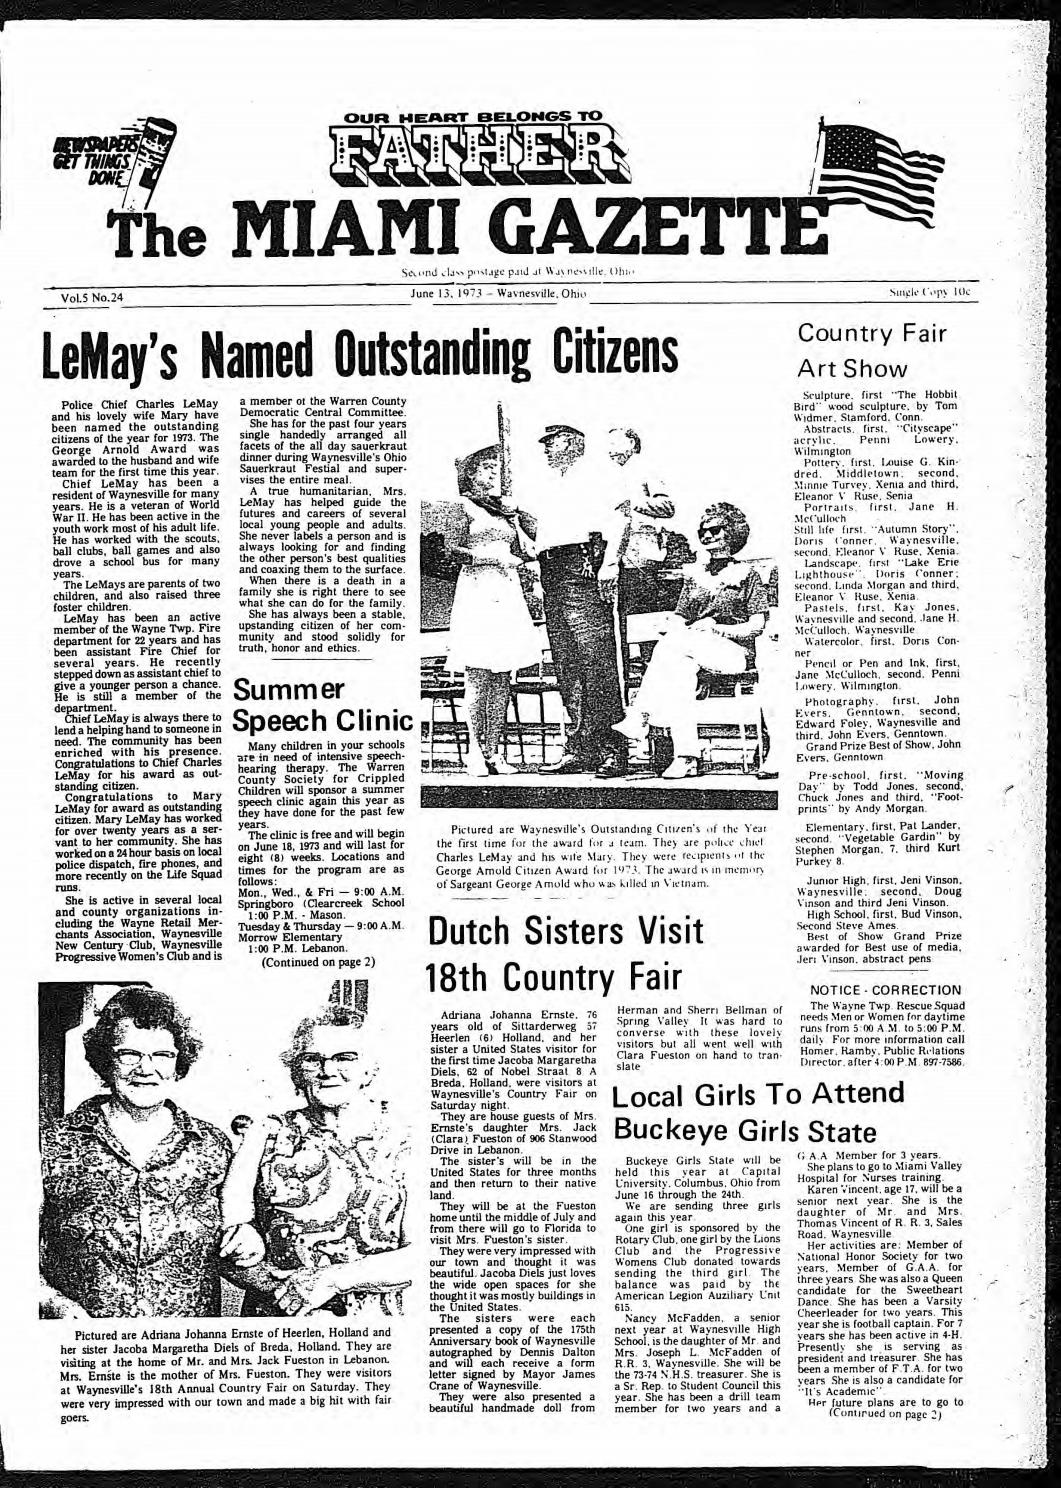 Miami Gazette June 13, 1973 November 27, 1973 by marylcook